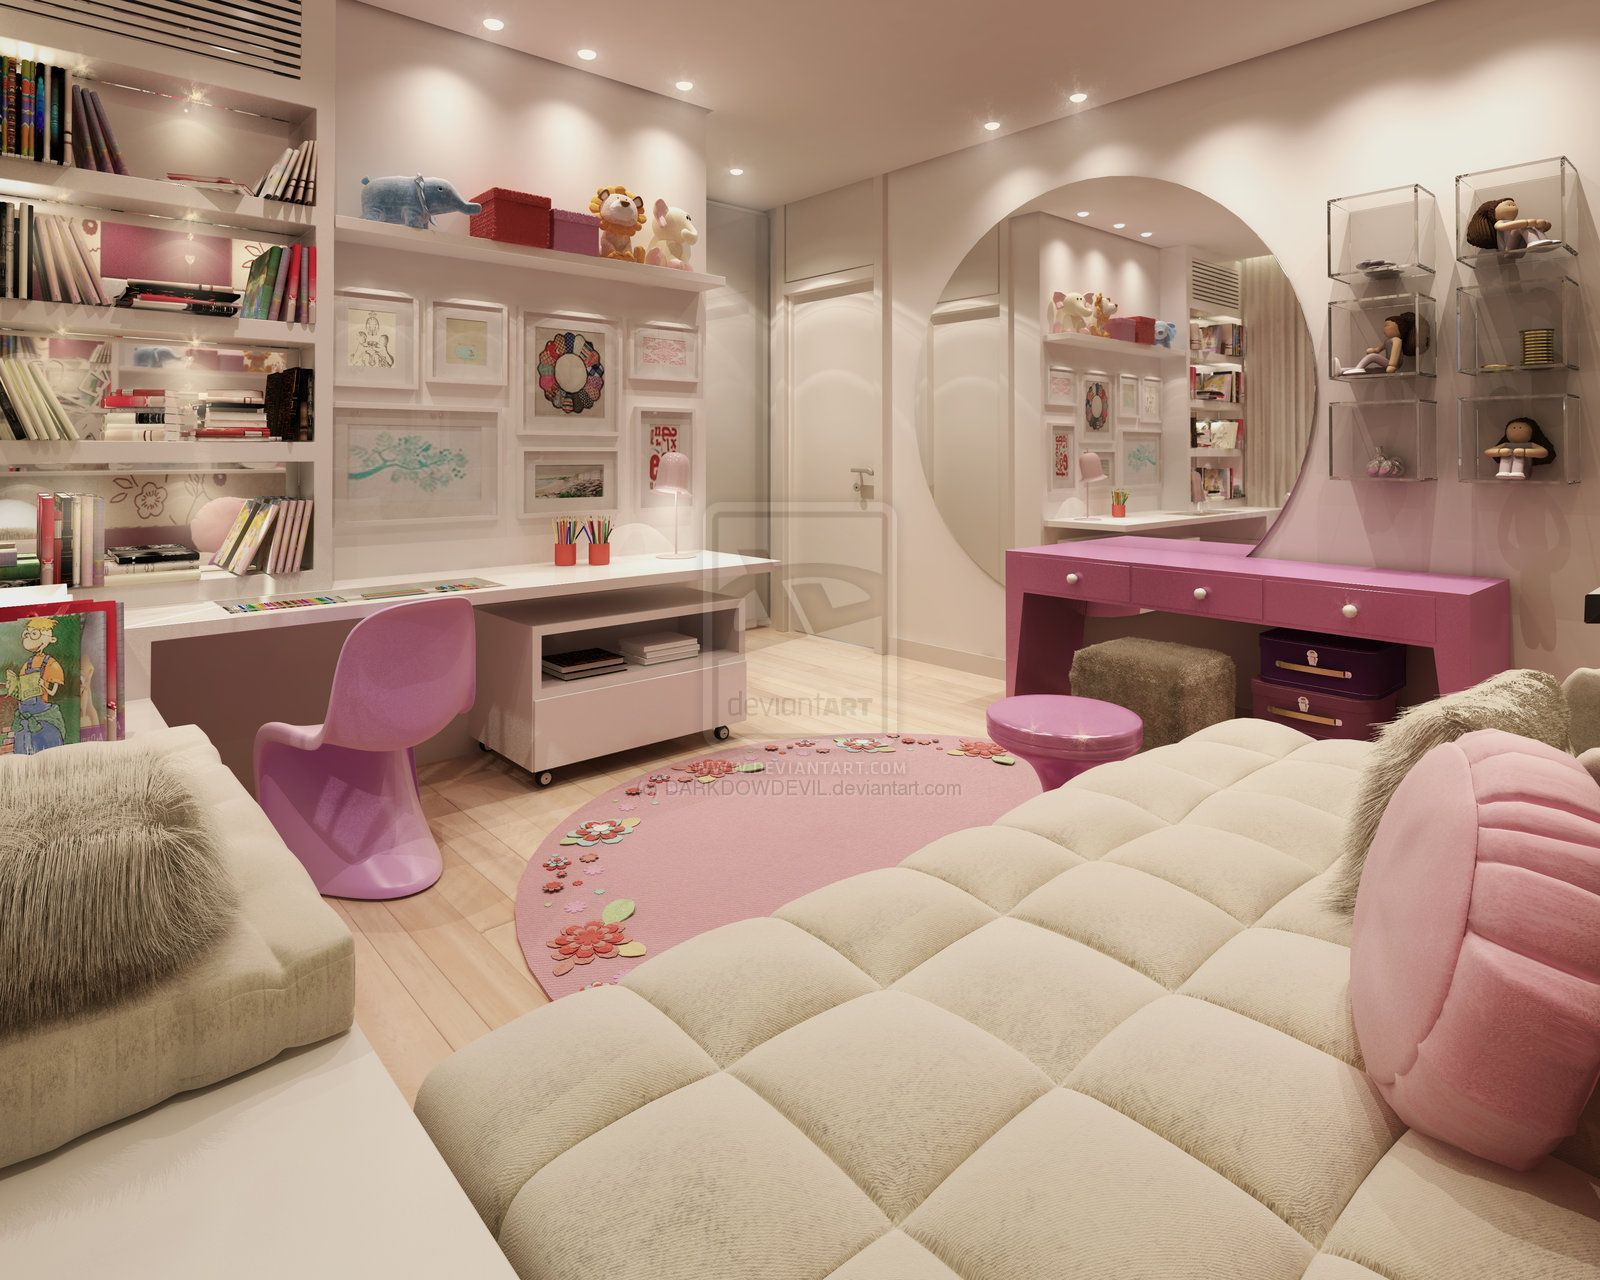 Girls Bedroom Designs 2013 girls' bedroom decoration ideas and tips | teen room designs, teen